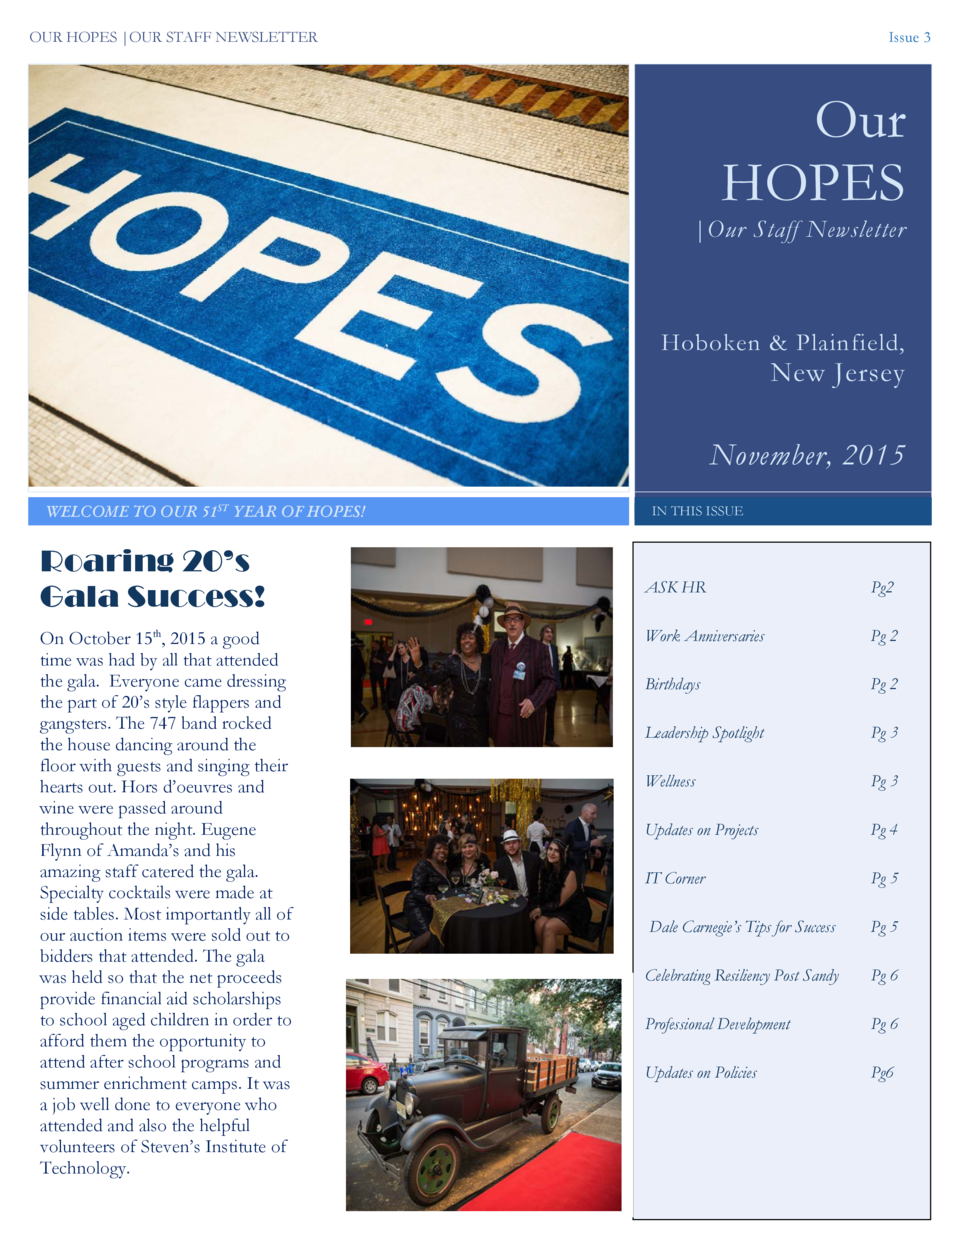 OUR HOPES  OUR STAFF NEWSLETTER  Issue 3  Our HOPES   Our Staff Newsletter  Hoboken   Plainfield,  New Jersey  November, 2...